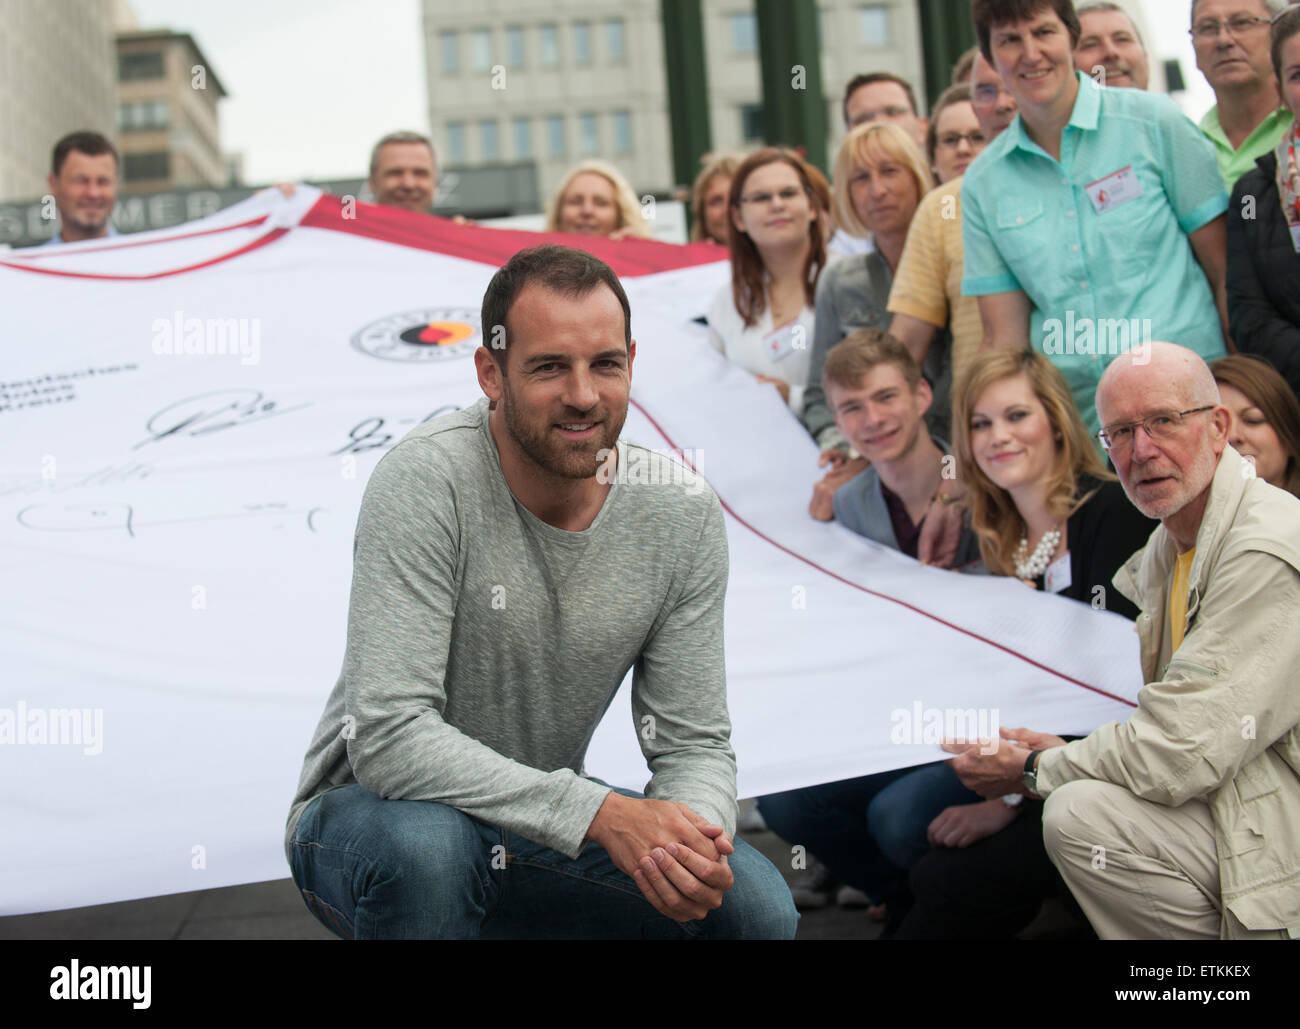 Berlin, Germany. 14th June, 2015. Former German national soccer team player Christoph Metzelder (C) poses with blood - Stock Image